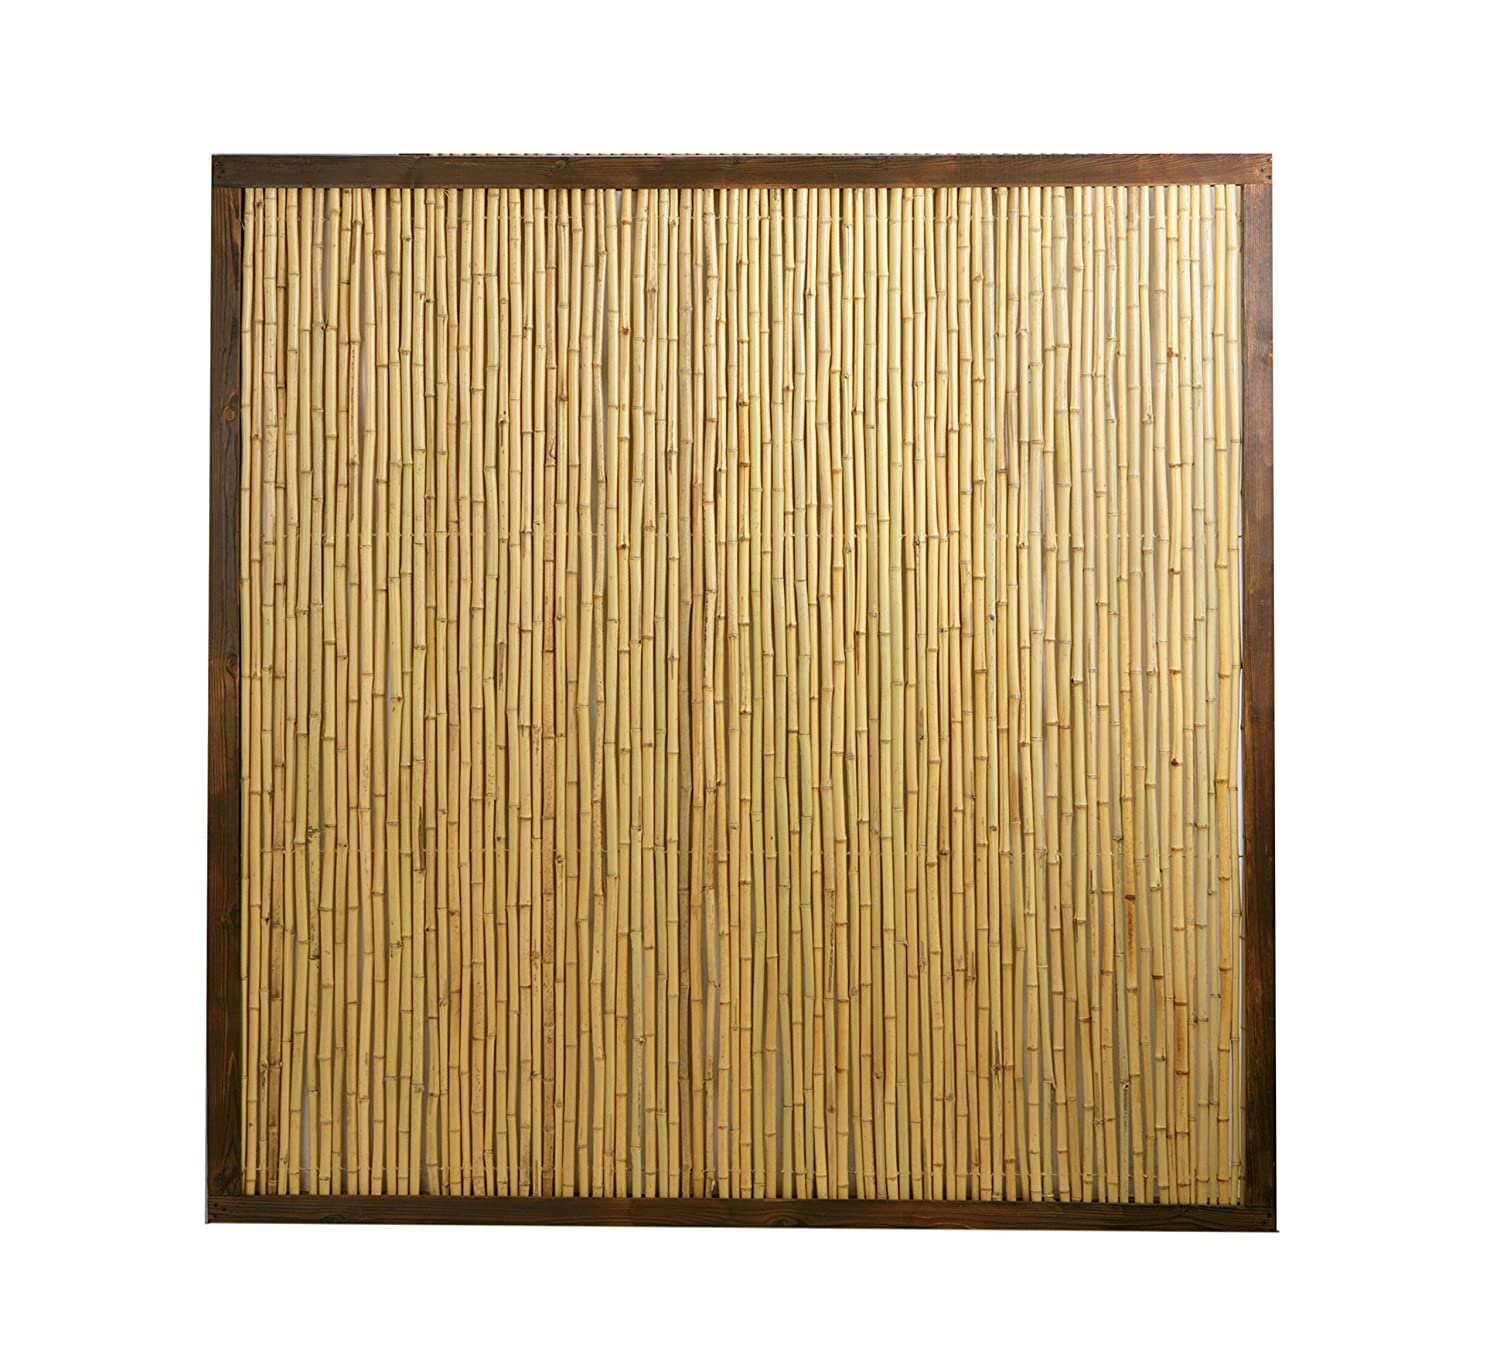 Bamboo Fence Panel with Frame 6ft x 6ft Amazon Garden